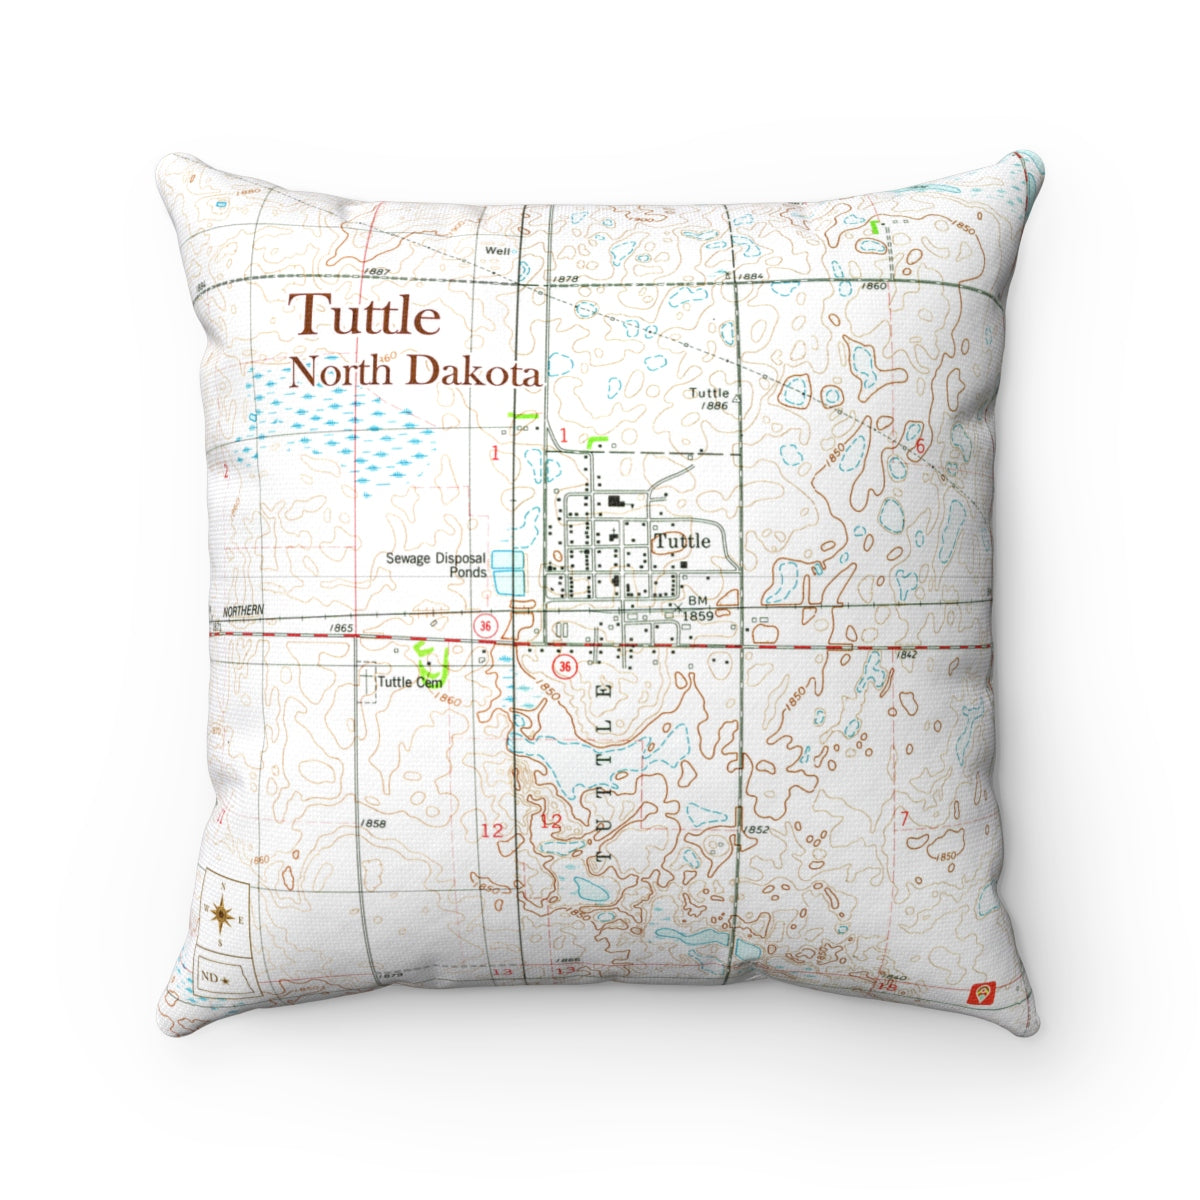 Tuttle  - North Dakota